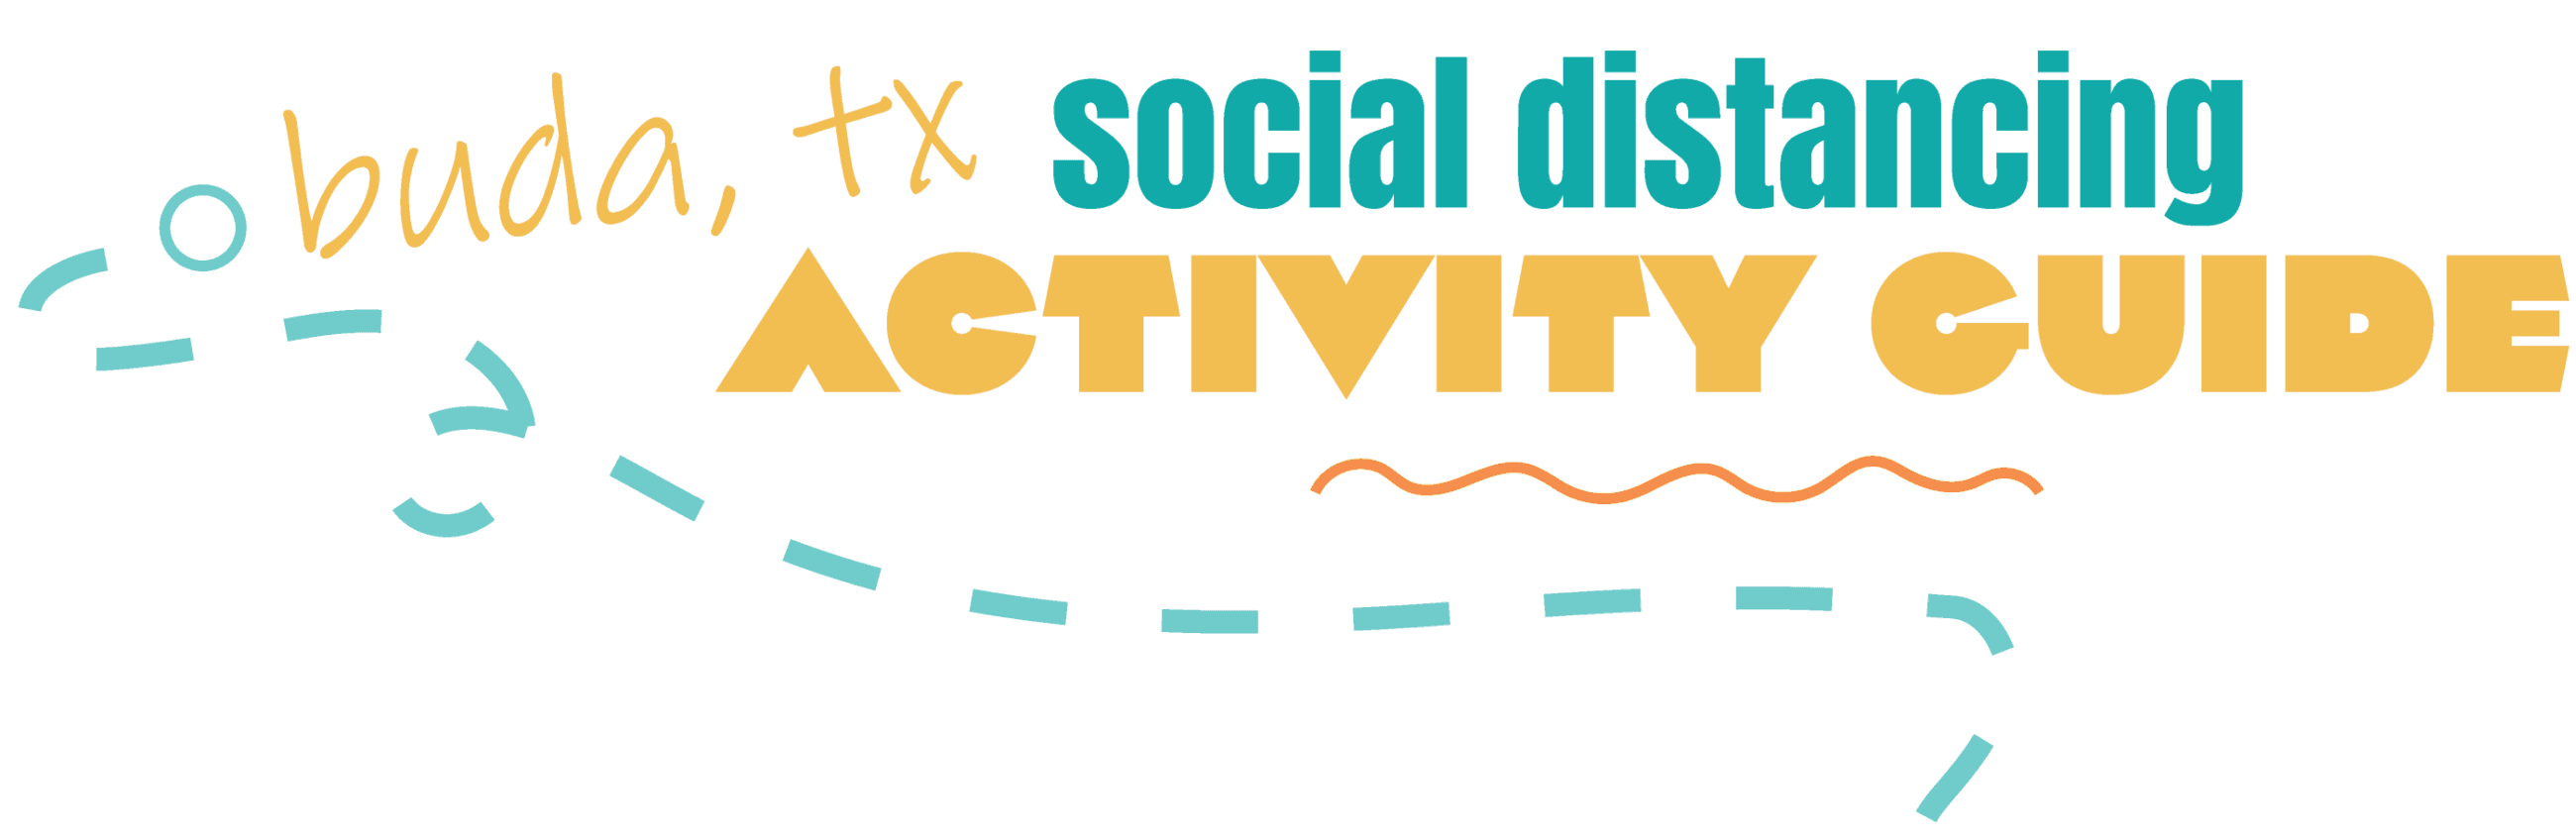 buda, tx social distancing guide text